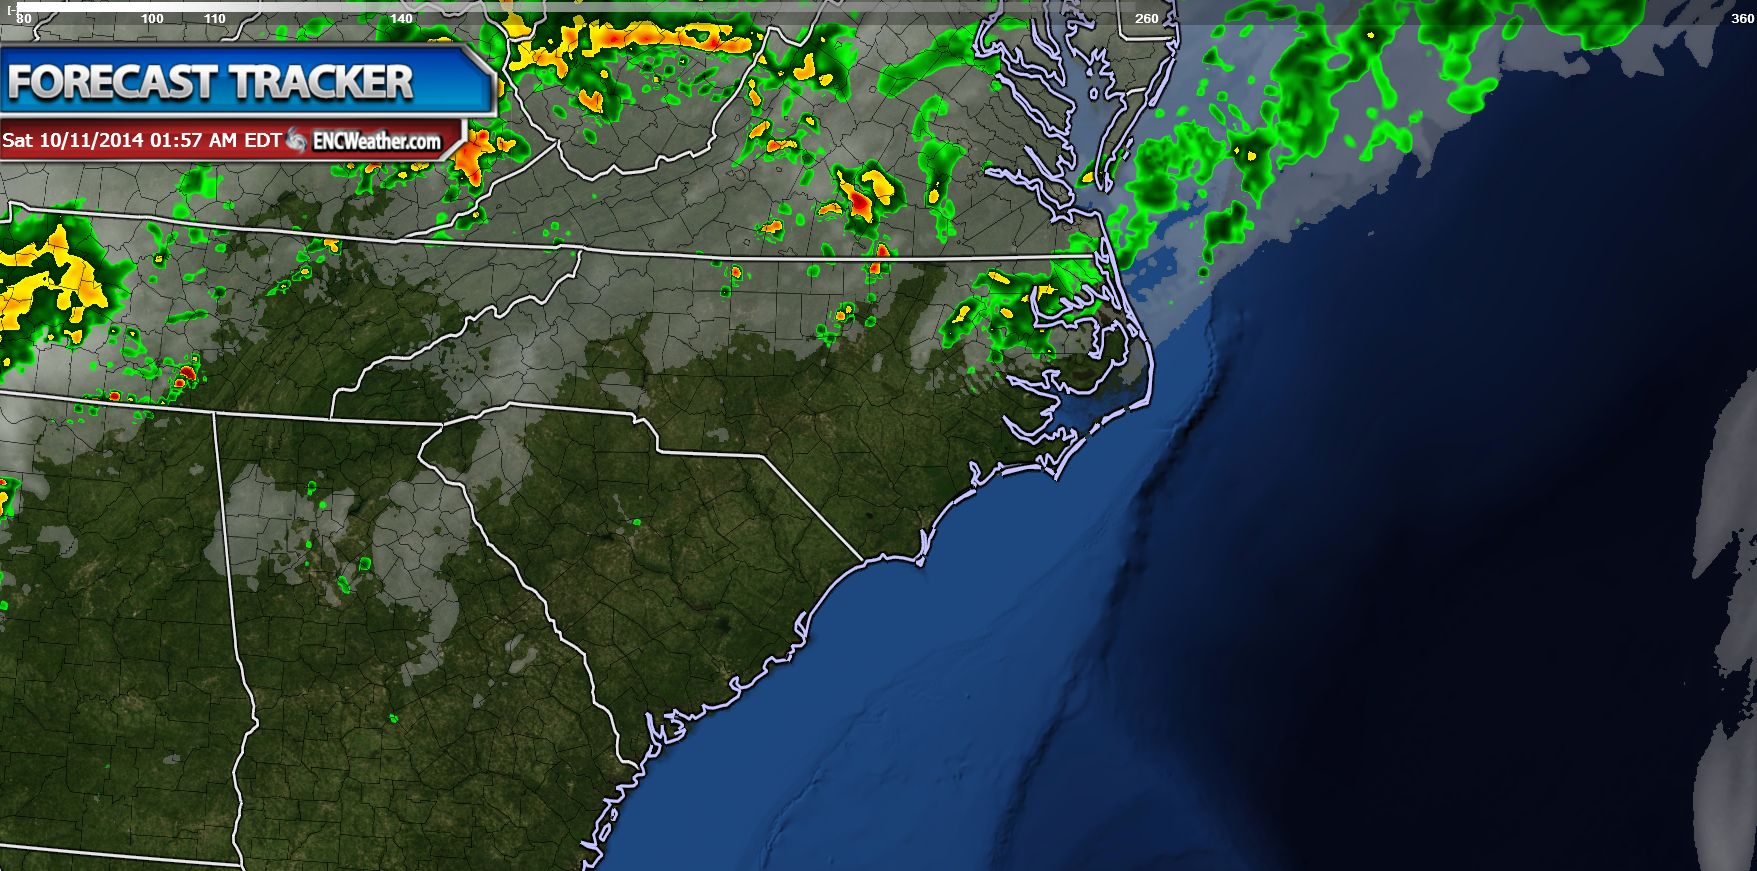 Future radar shows rain decreasing later tonight with north and northwestern sections of ENC seeing some rain.